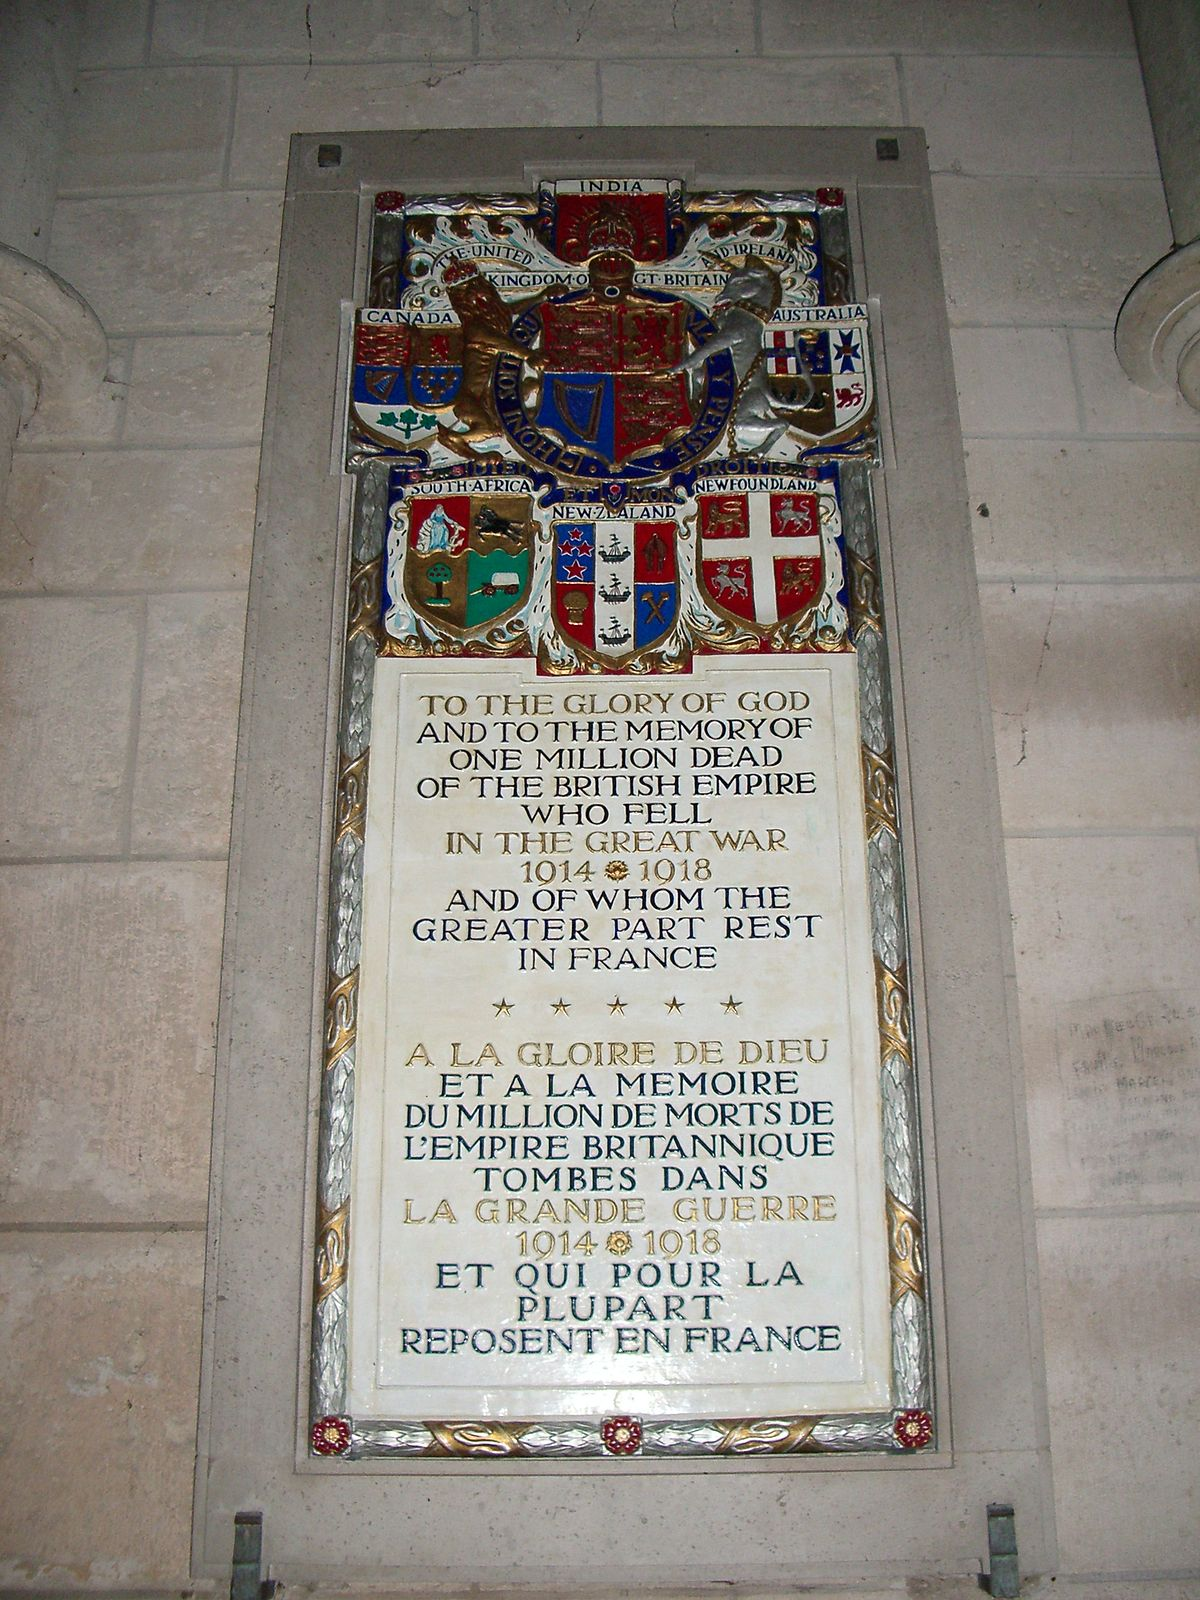 Memorial tablets to the British Empire dead of the First